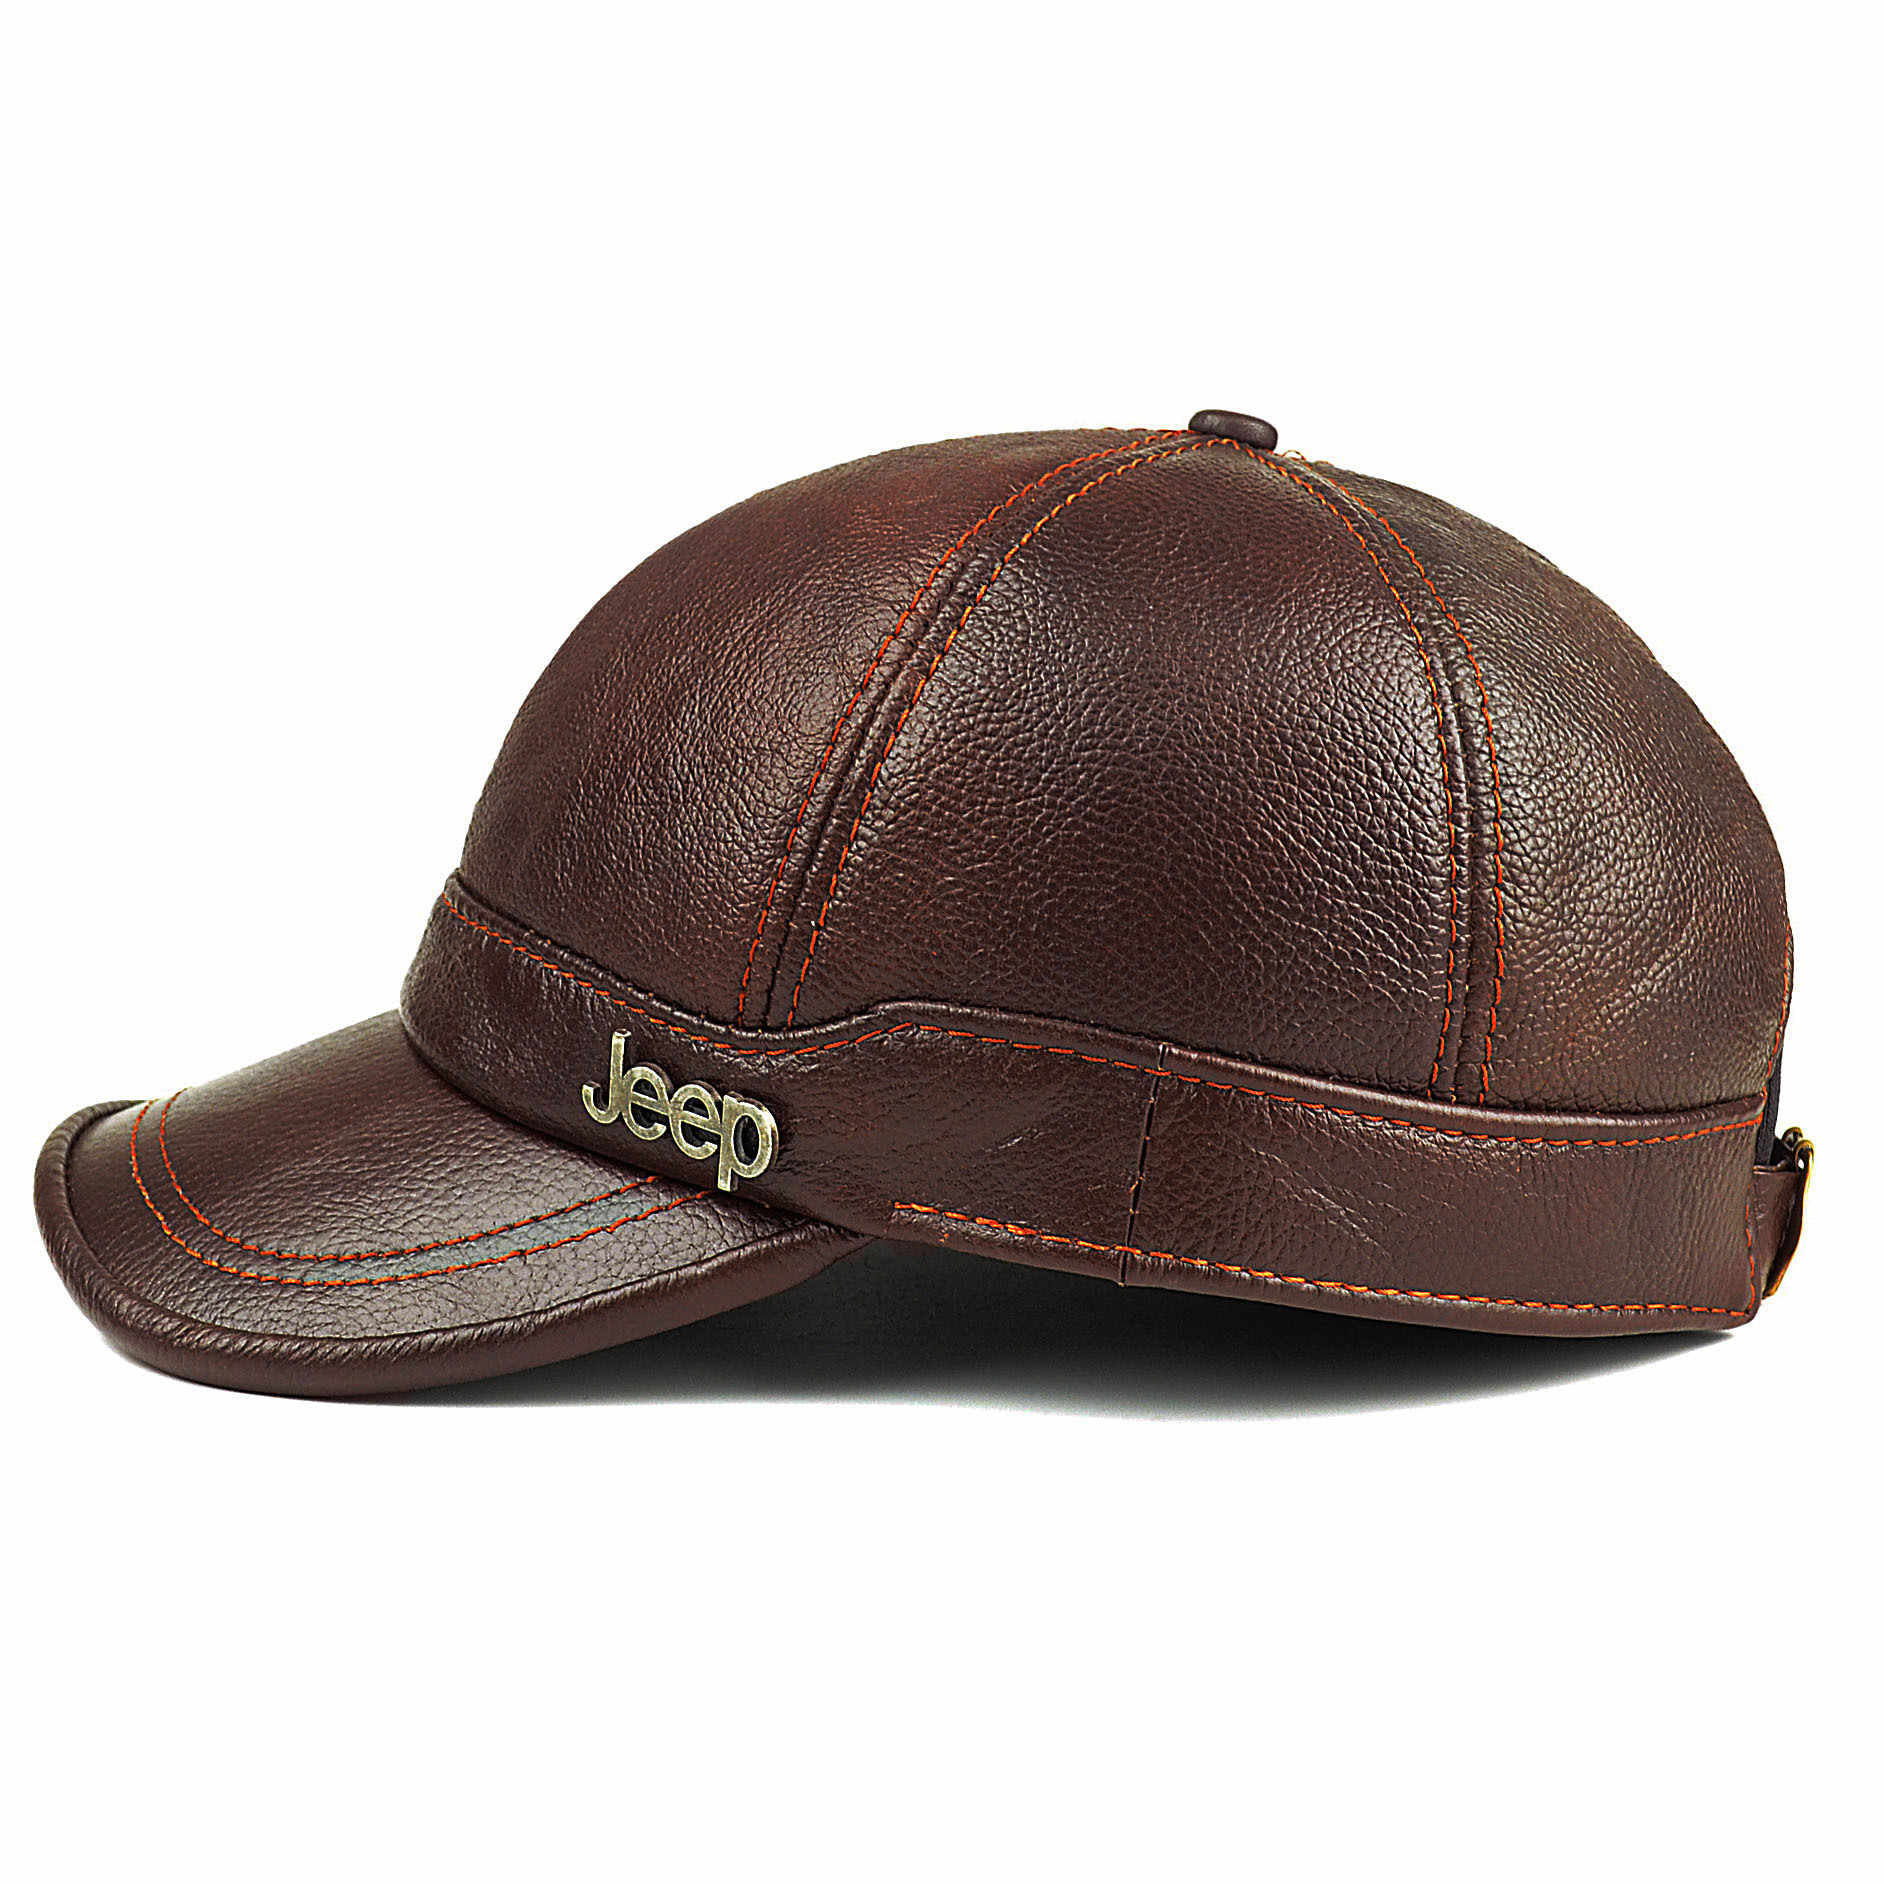 4d26494caa6 ... Adult New Genuine Leather Hat Men s Warm Genuine Leather Baseball Cap  Male Winter Outdoor Ear Protection ...